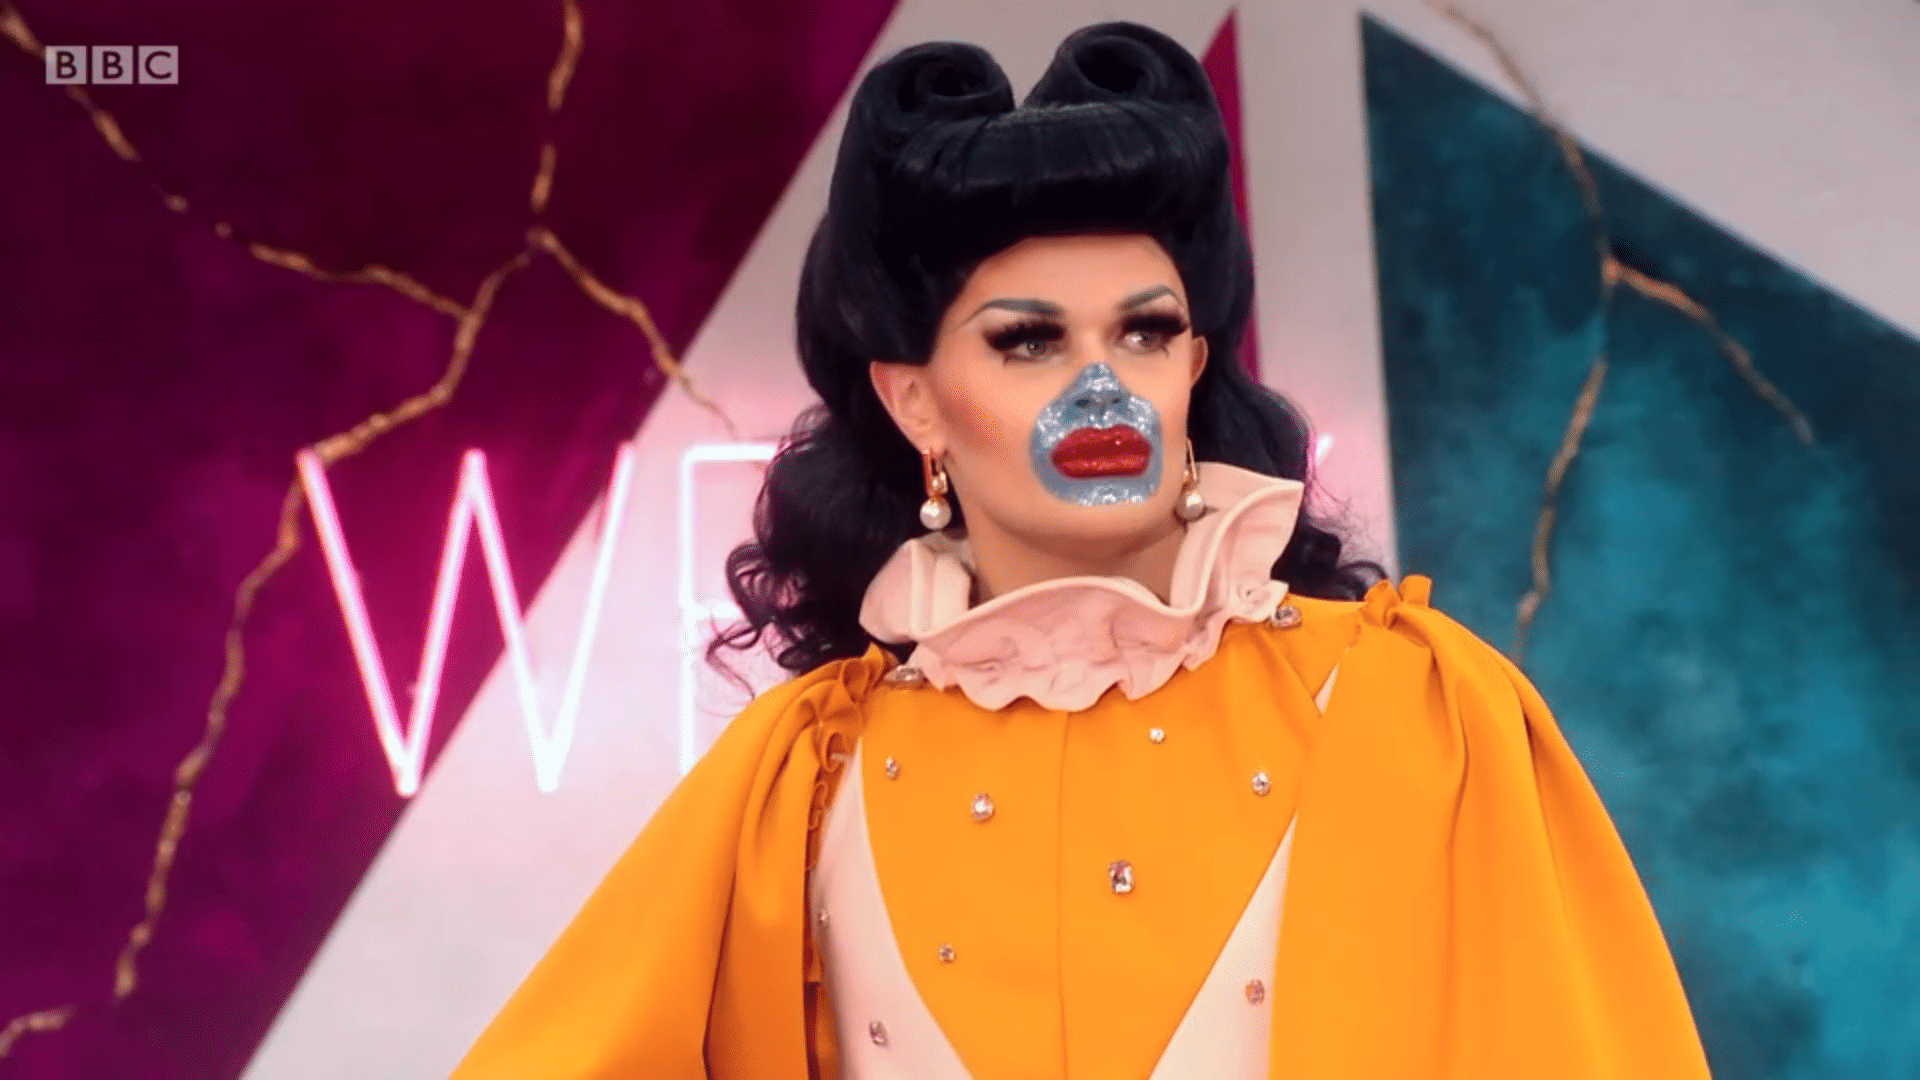 Sister Sister: a drag queen with a bright blue circle over her mouth and nose, wearing a yellow frilly dress and victory rolls in her hair